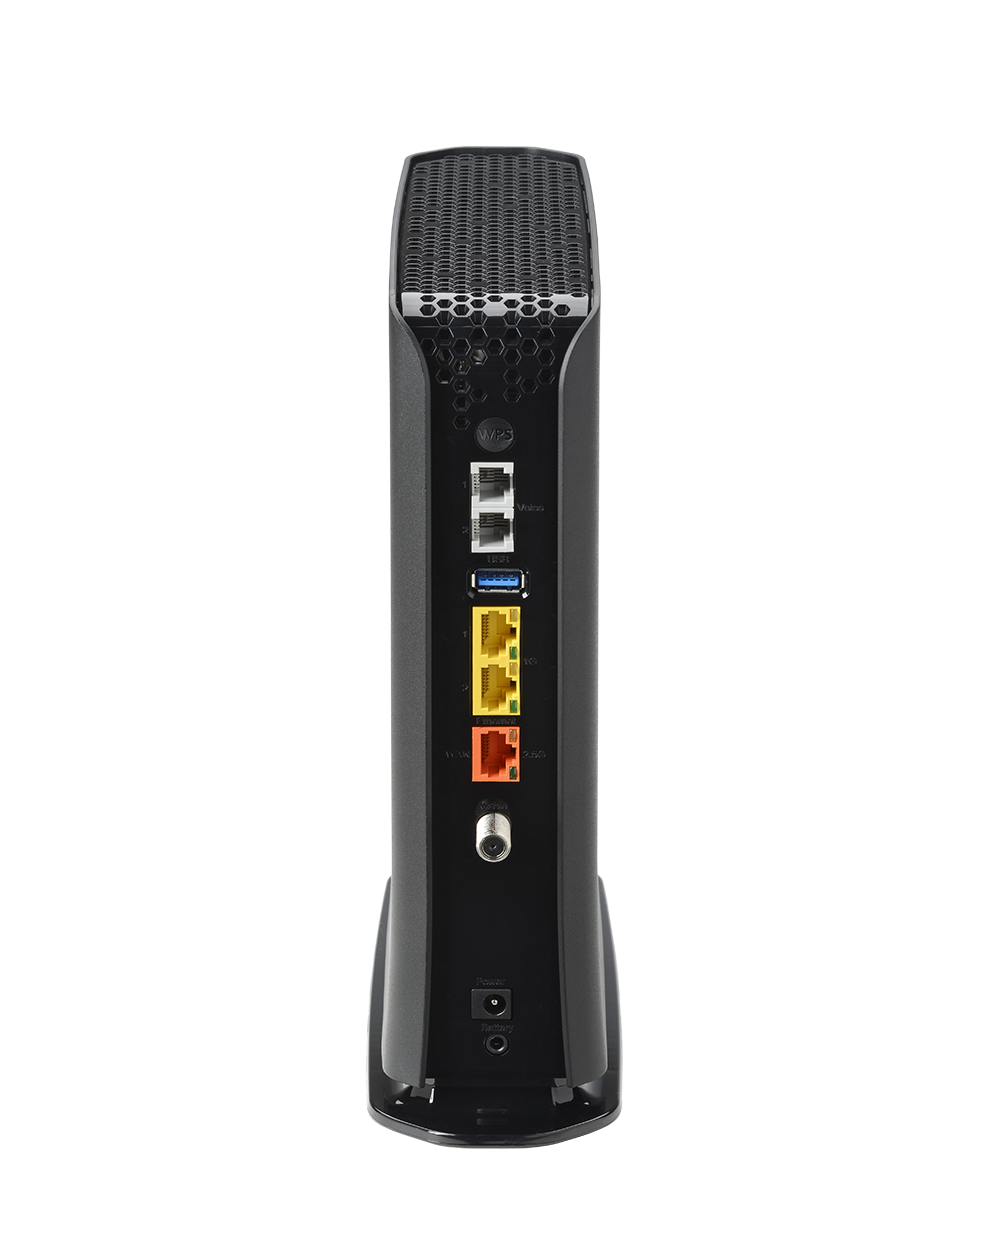 DOCSIS 3.1 Cable Modem Router with Voice - Hitron CODA5519